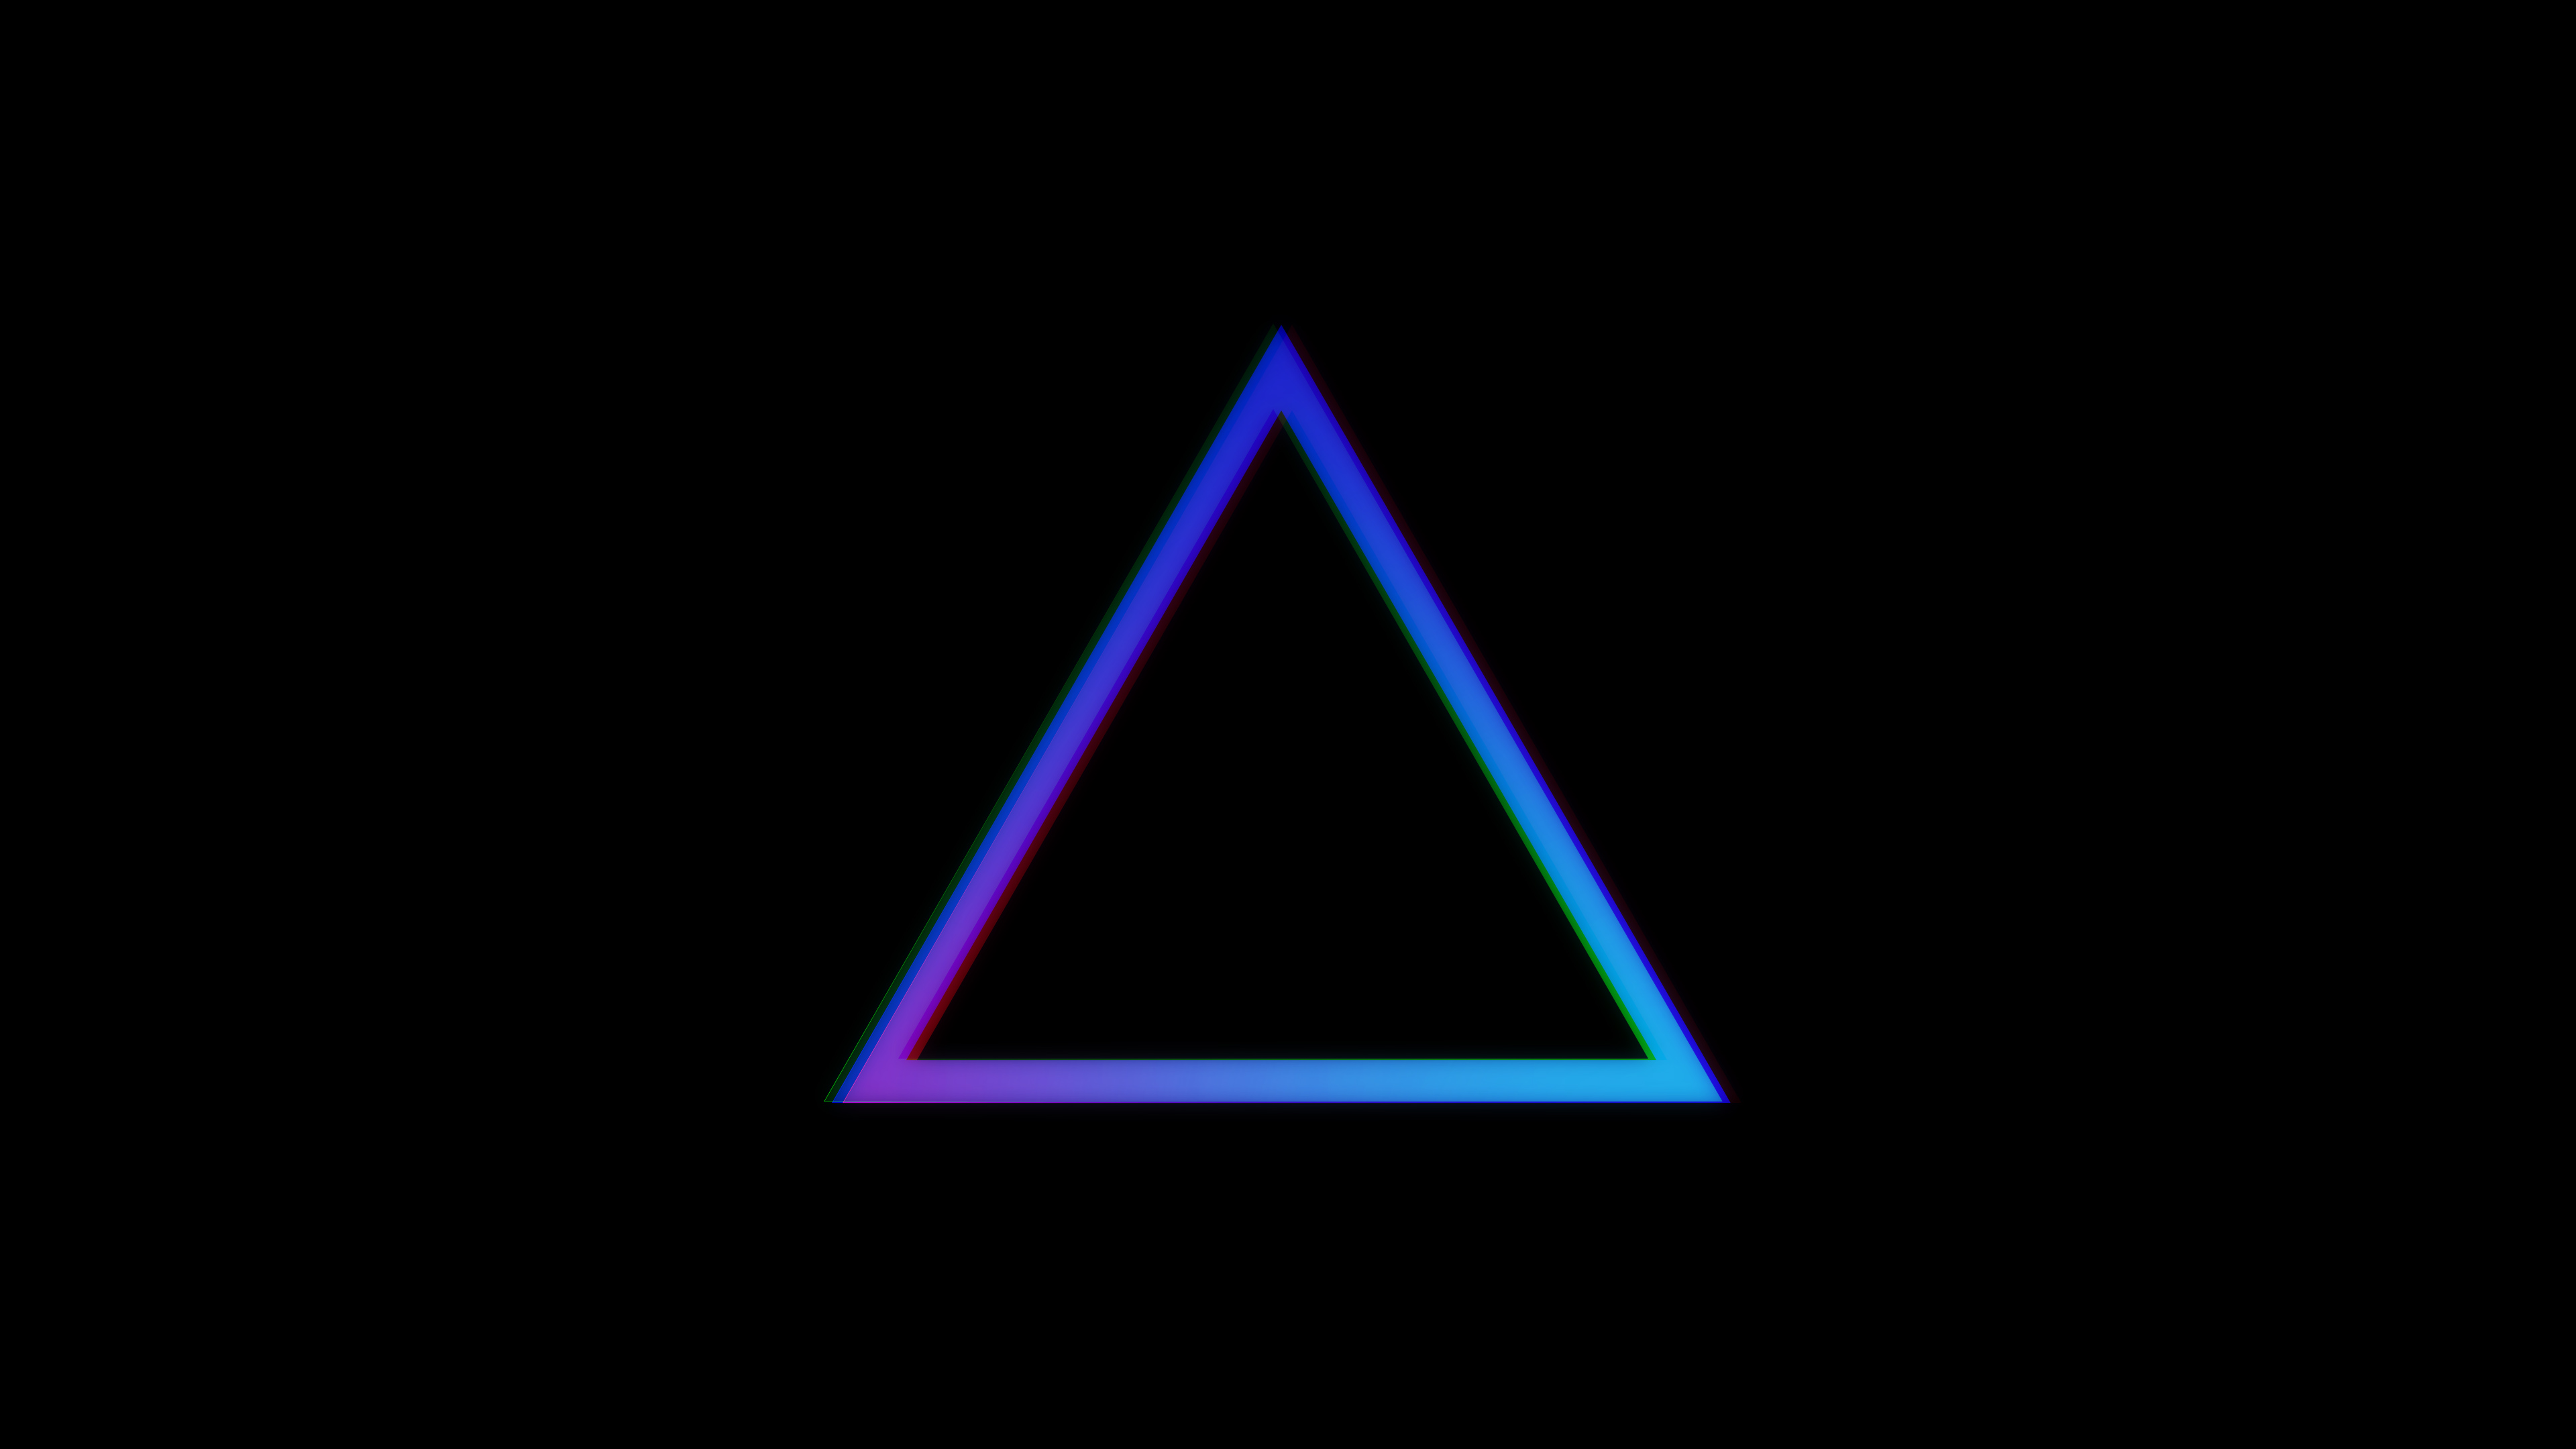 Triangle Minimalist 4k, HD Abstract, 4k Wallpapers, Images ...